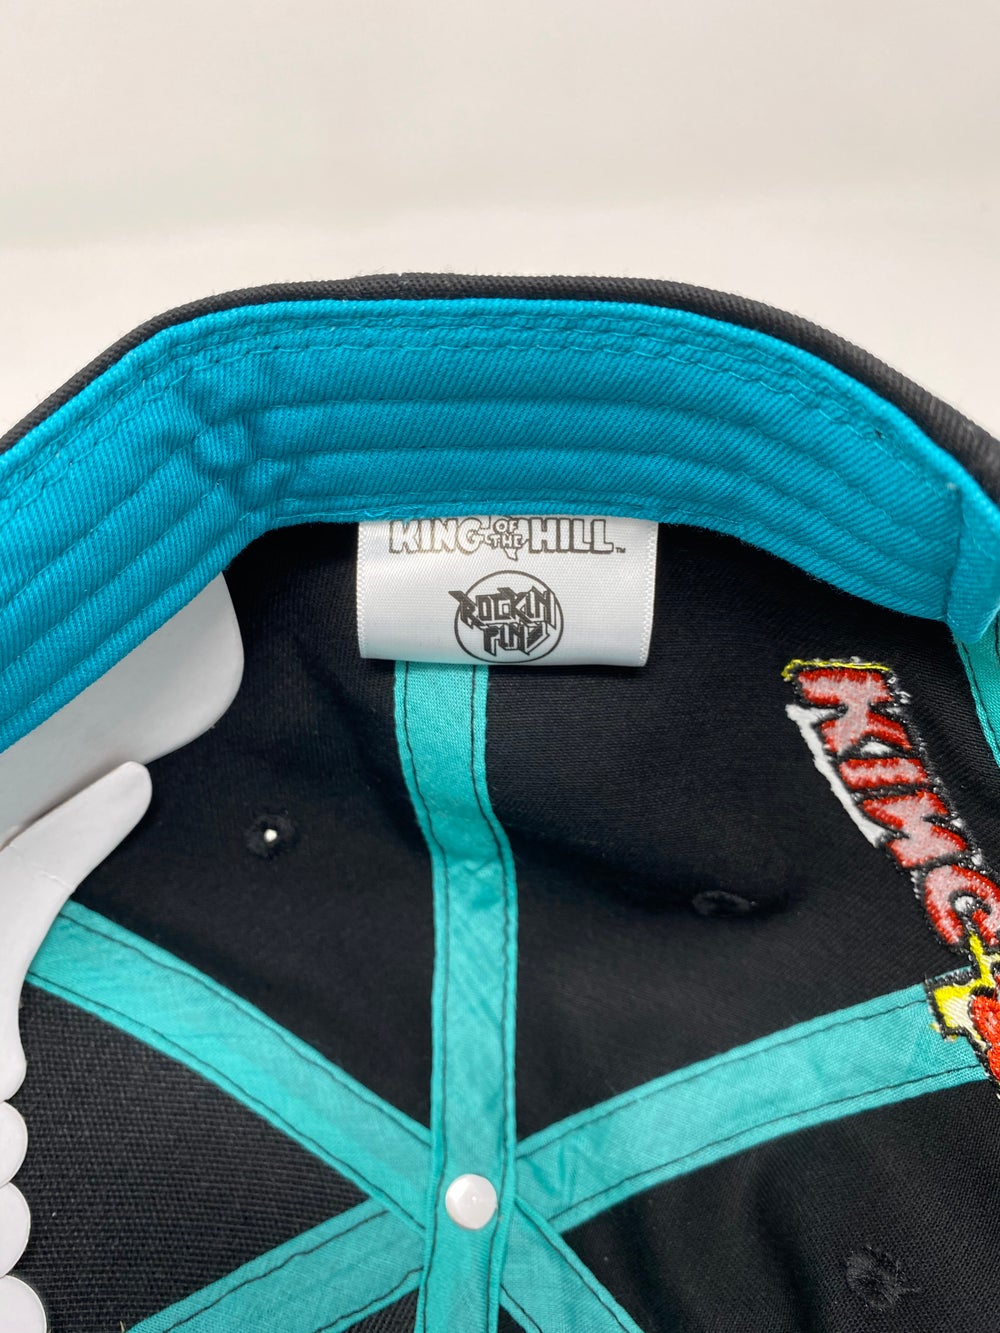 King of the Hill - Bobby Hill Horns Snapback Hat